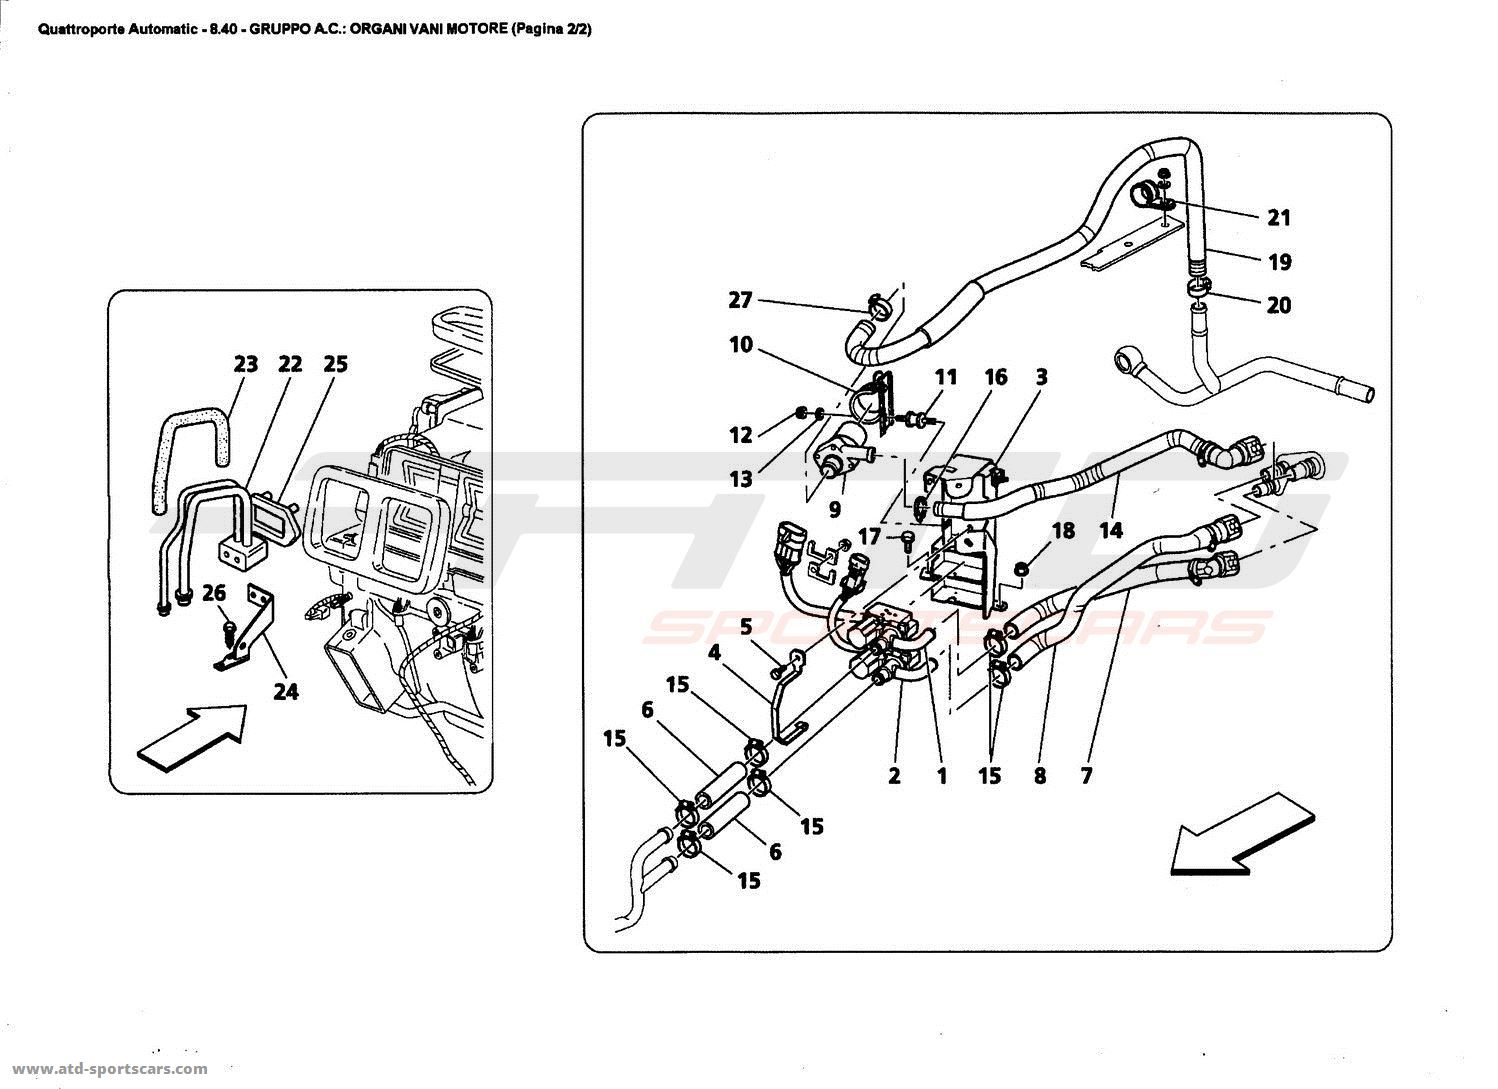 2001 Mercury Sable Compartment Fuse Box Diagram Download Wiring 1999 Mystique 2006 Milan Html Imageresizertool Com 1994 2003